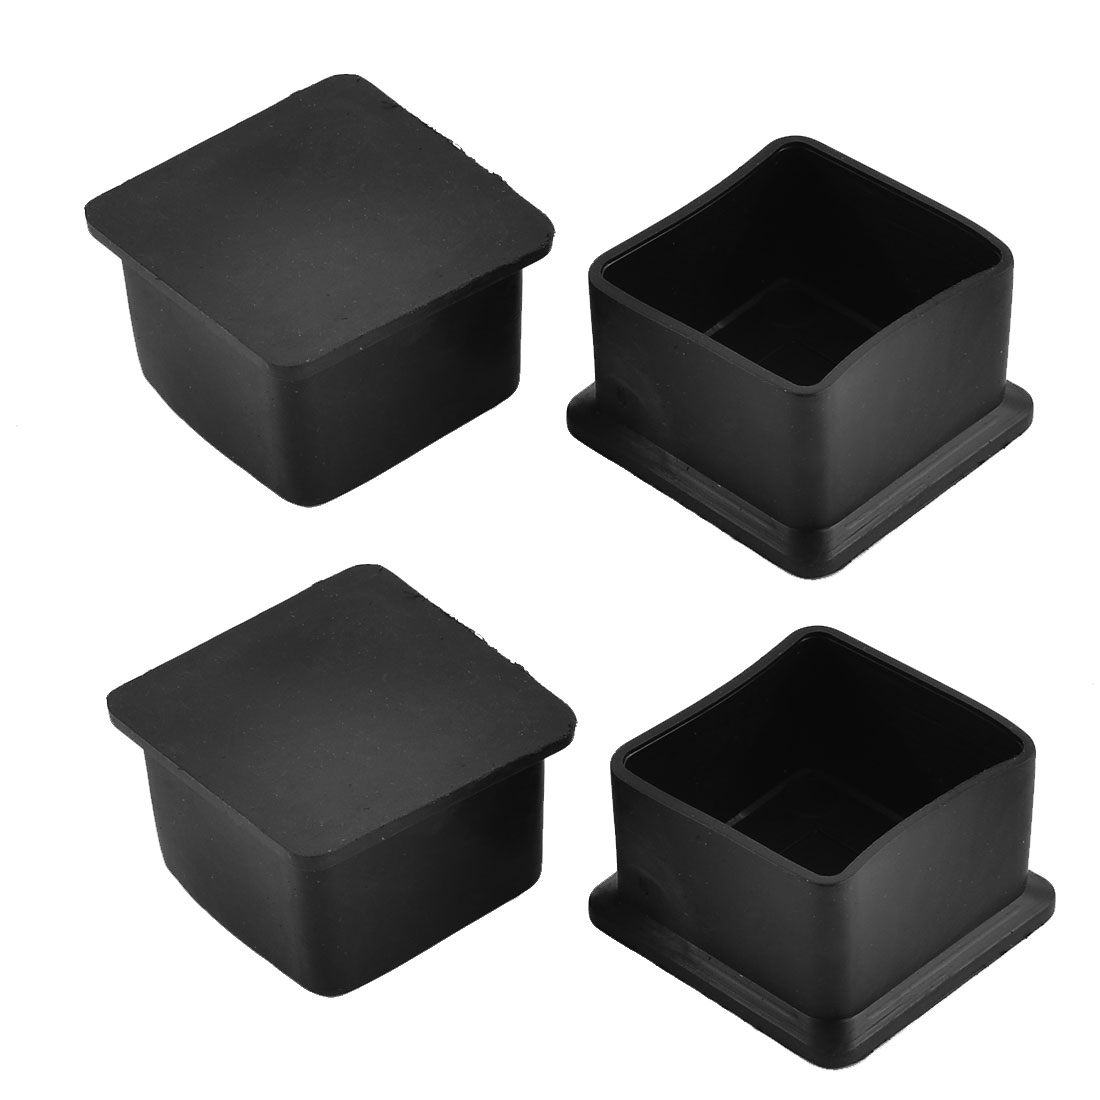 40mm x 40mm Square Shaped Furniture Table Desk Foot Rubber End Cap Cover Black 4pcs